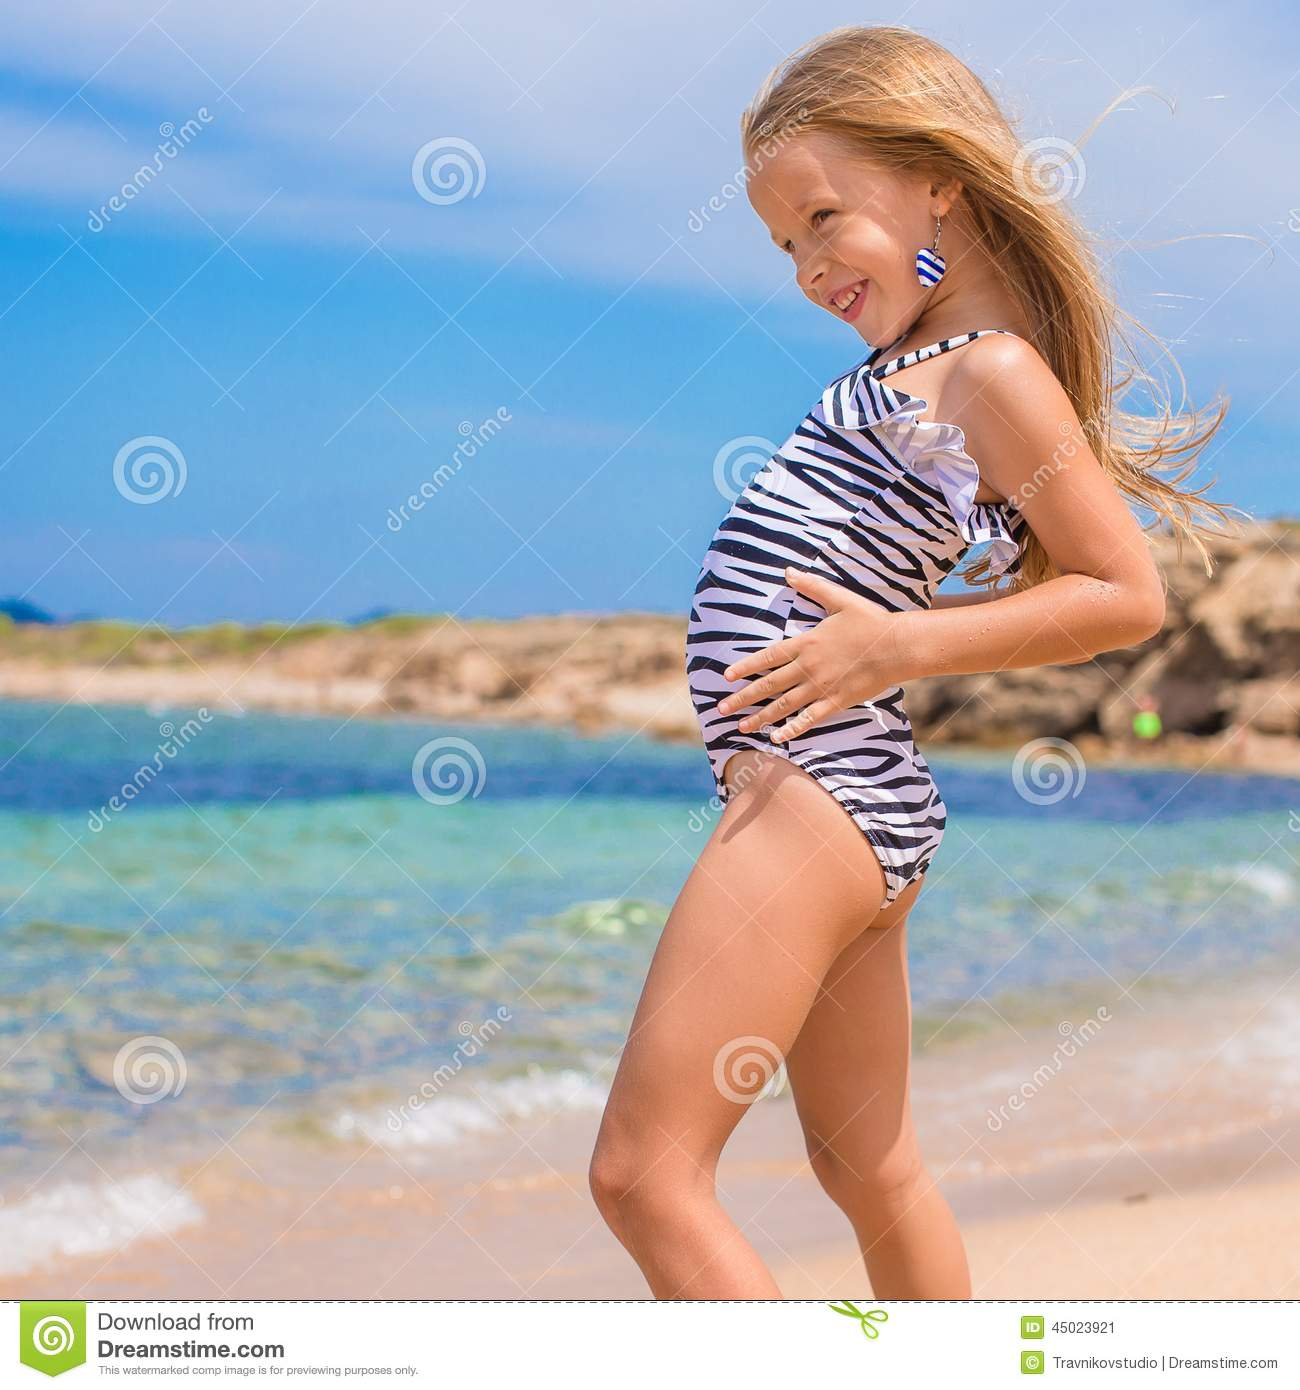 Agree Little cute amateur girls at the beach consider